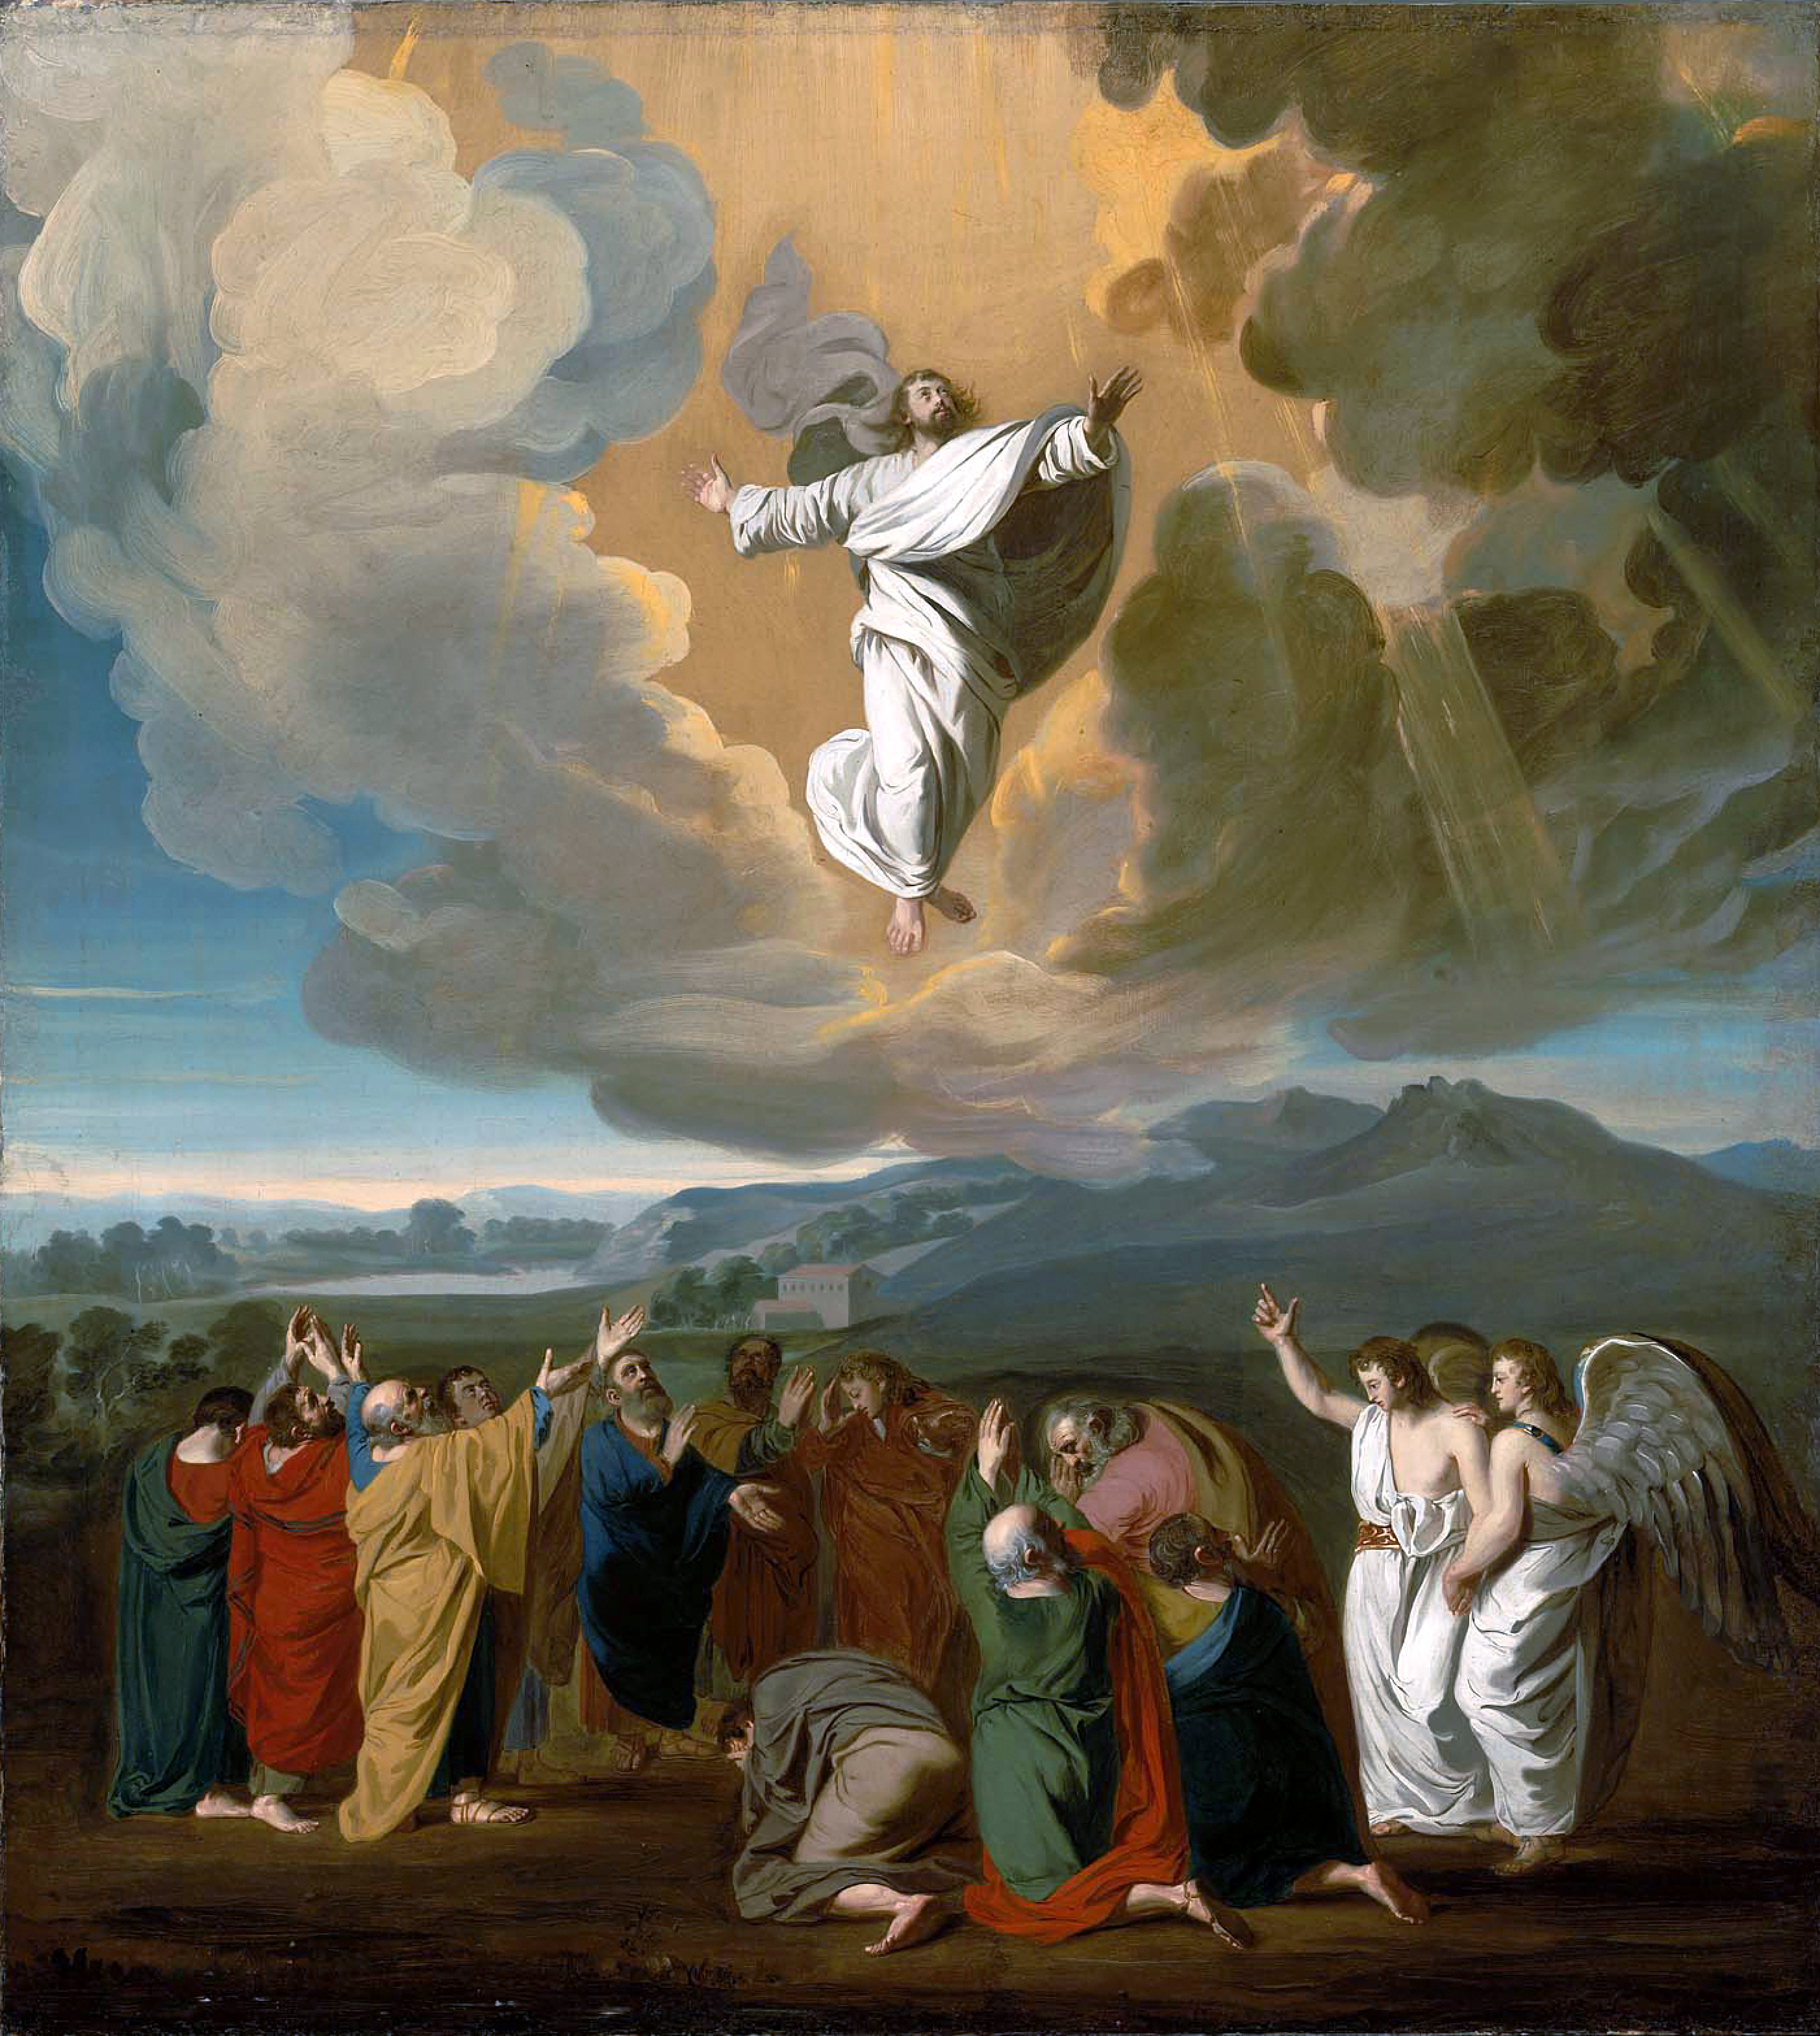 The Ascension of Christ, 1775, by American painter John Singleton Copley (1738-1815), Boston Museum of Fine Arts.